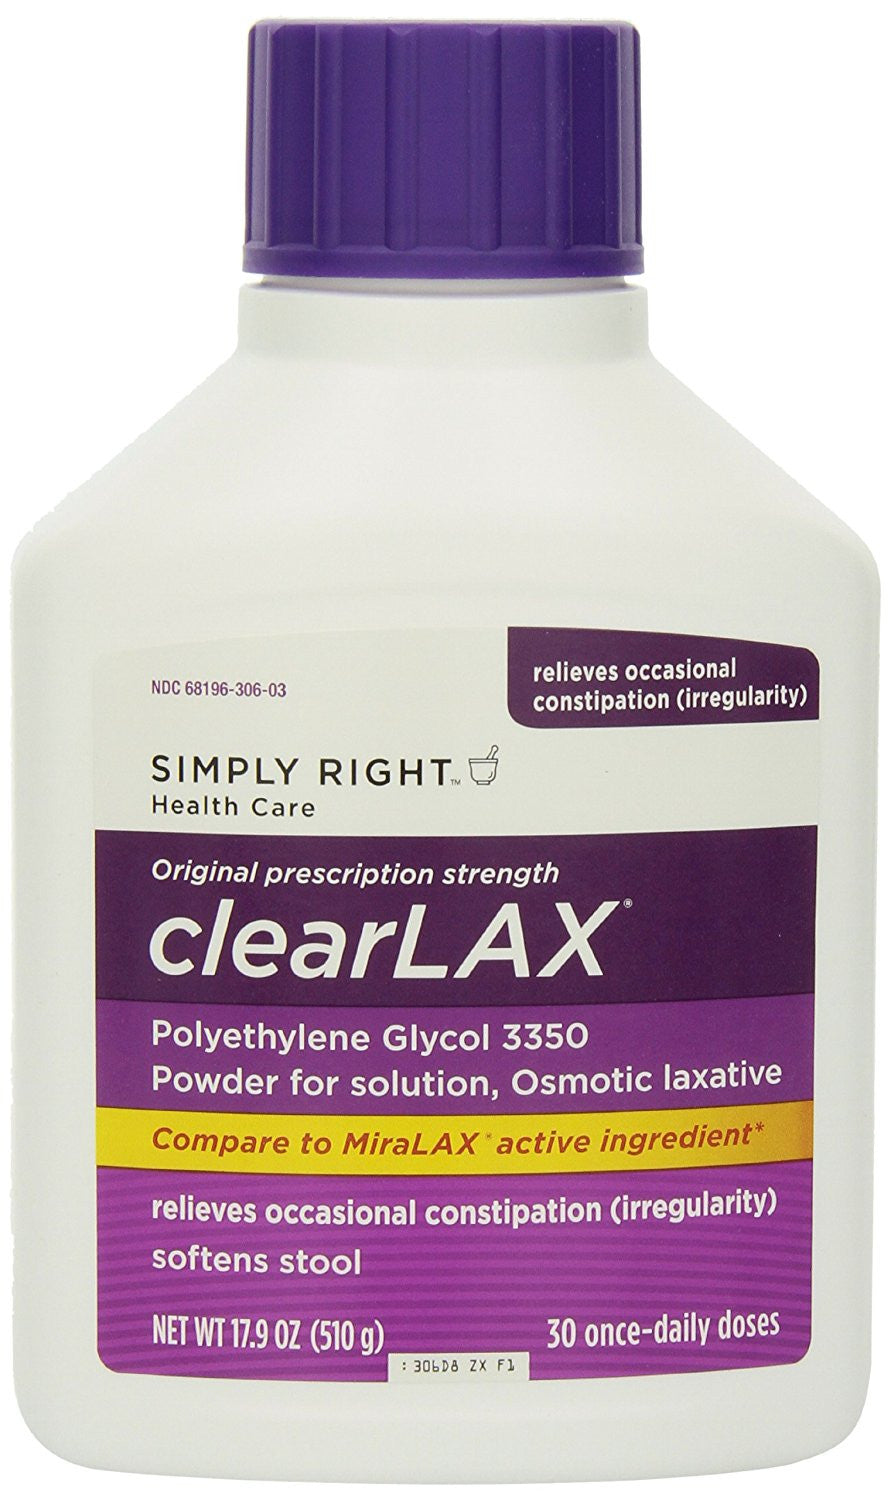 Member Mark Clearlax Calorie Counter, 3 bottles (30 Count each)